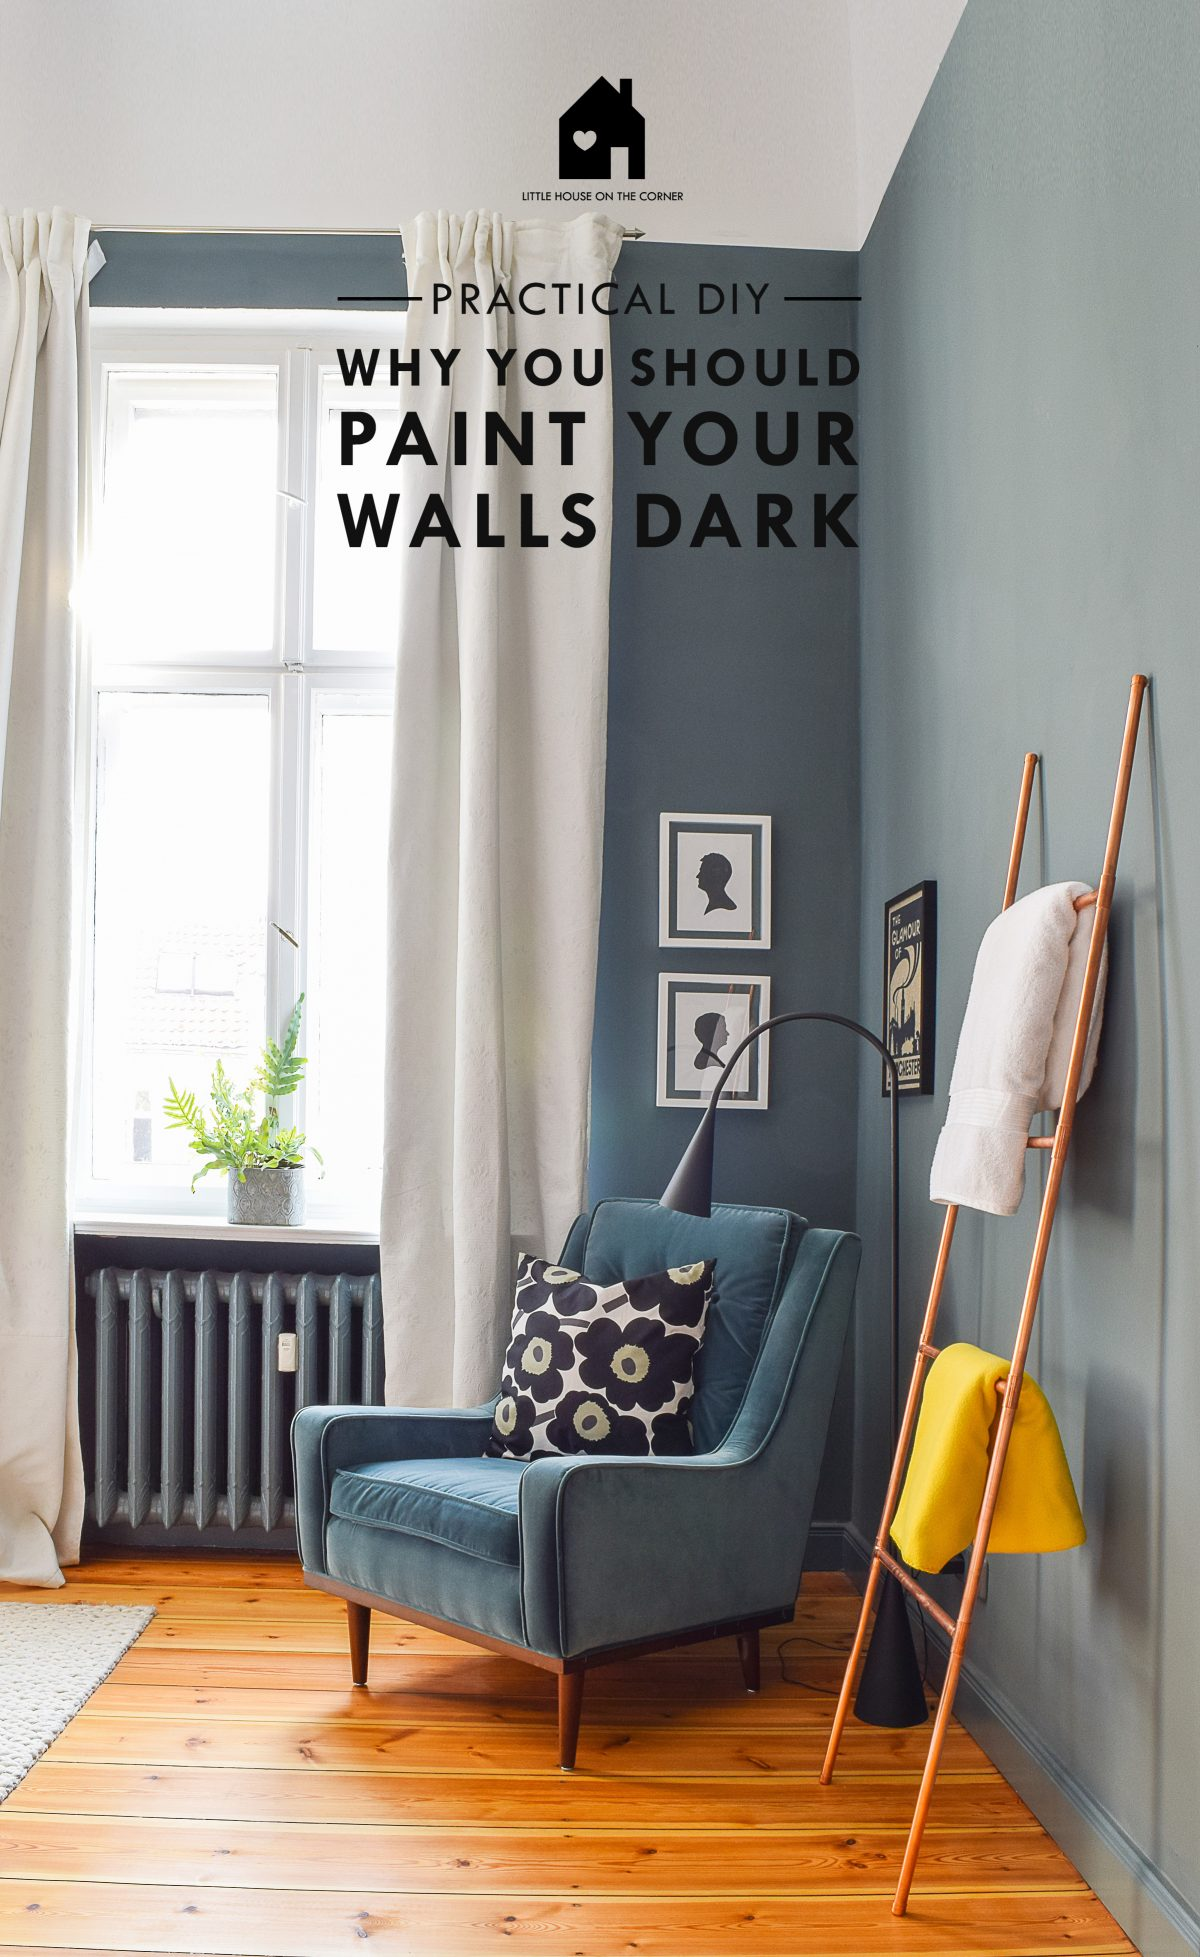 3 Practical Reasons To Paint Your Walls Dark | Little House On The Corner